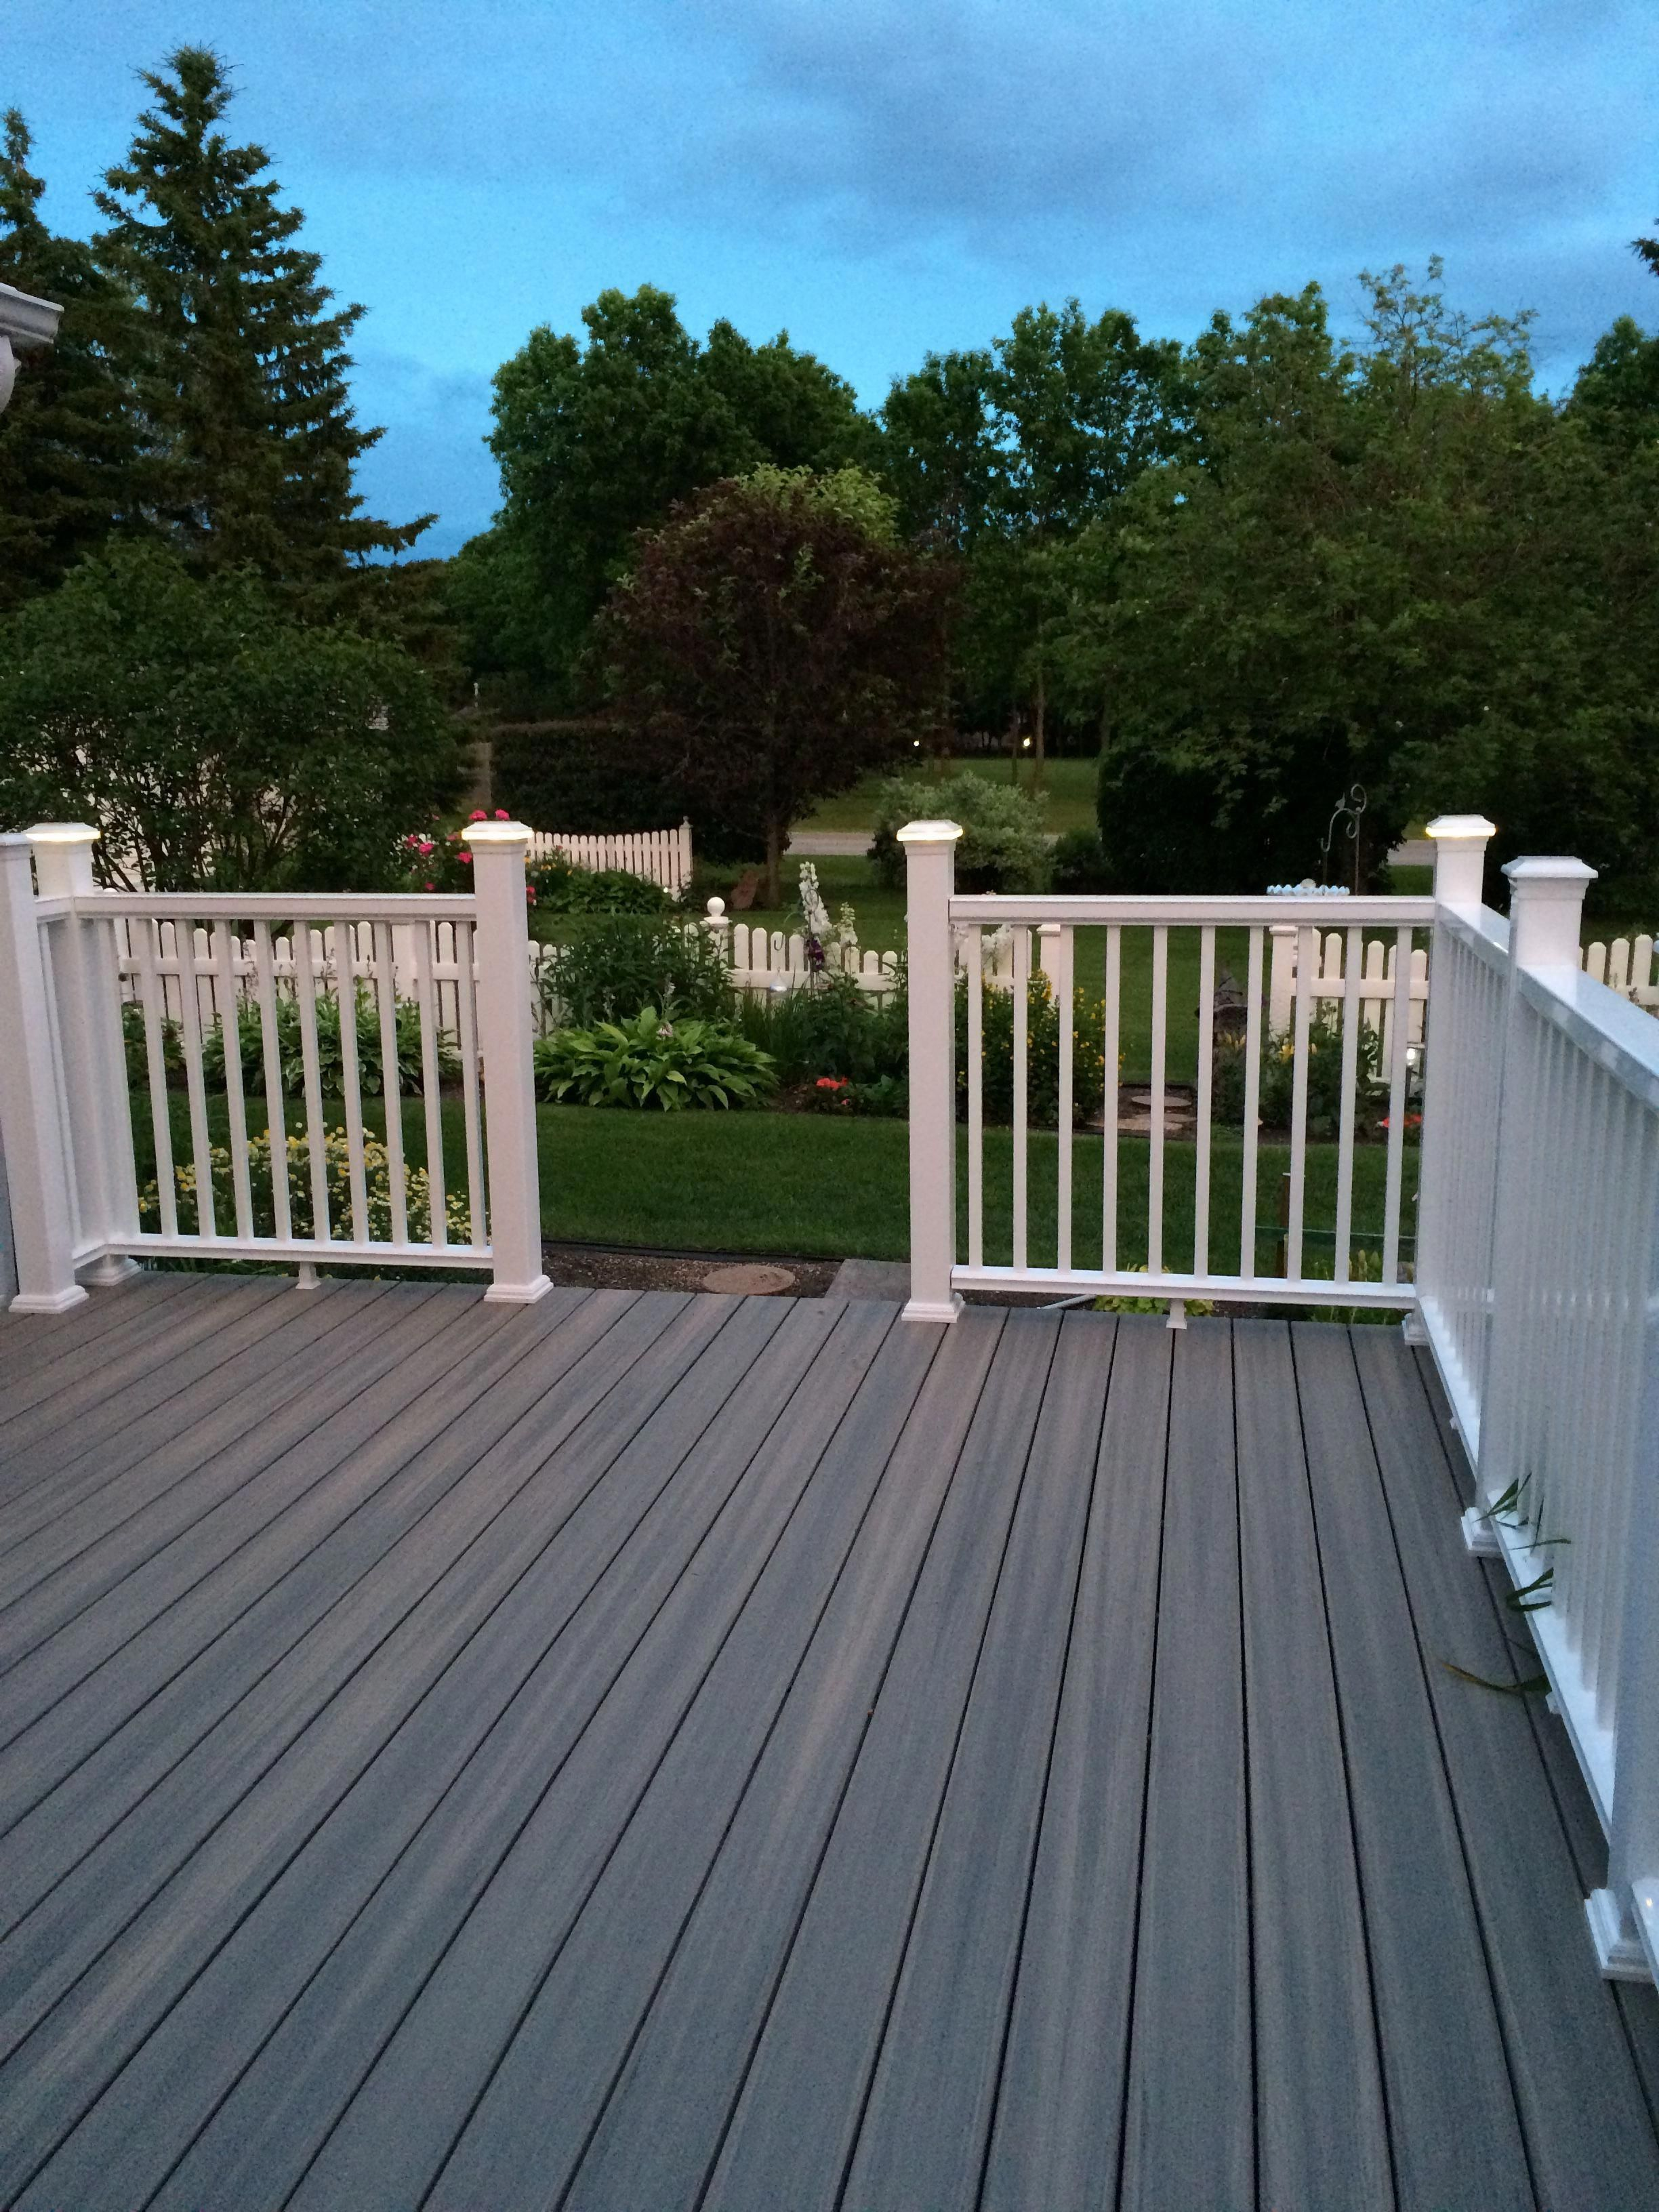 When You Ve Got A Great View You Can Keep It Simple In Terms Of Aesthetics And Maintenance Paramount Pvc Decking In F Building A Deck Deck Building Cost Deck